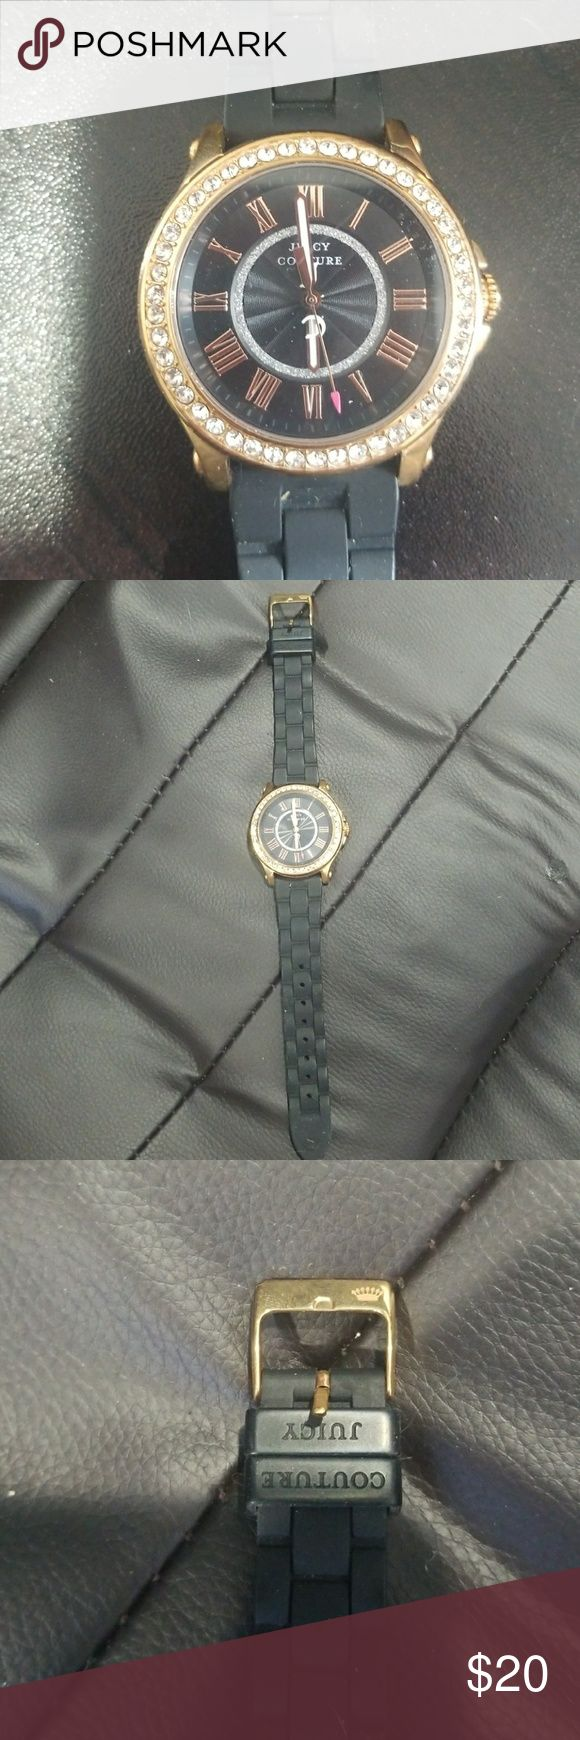 Juicy couture watch Black silicone band, gold trim watch with clear rhinestones. Authentic juicy couture. Needs a new battery. Juicy Couture Accessories Watches